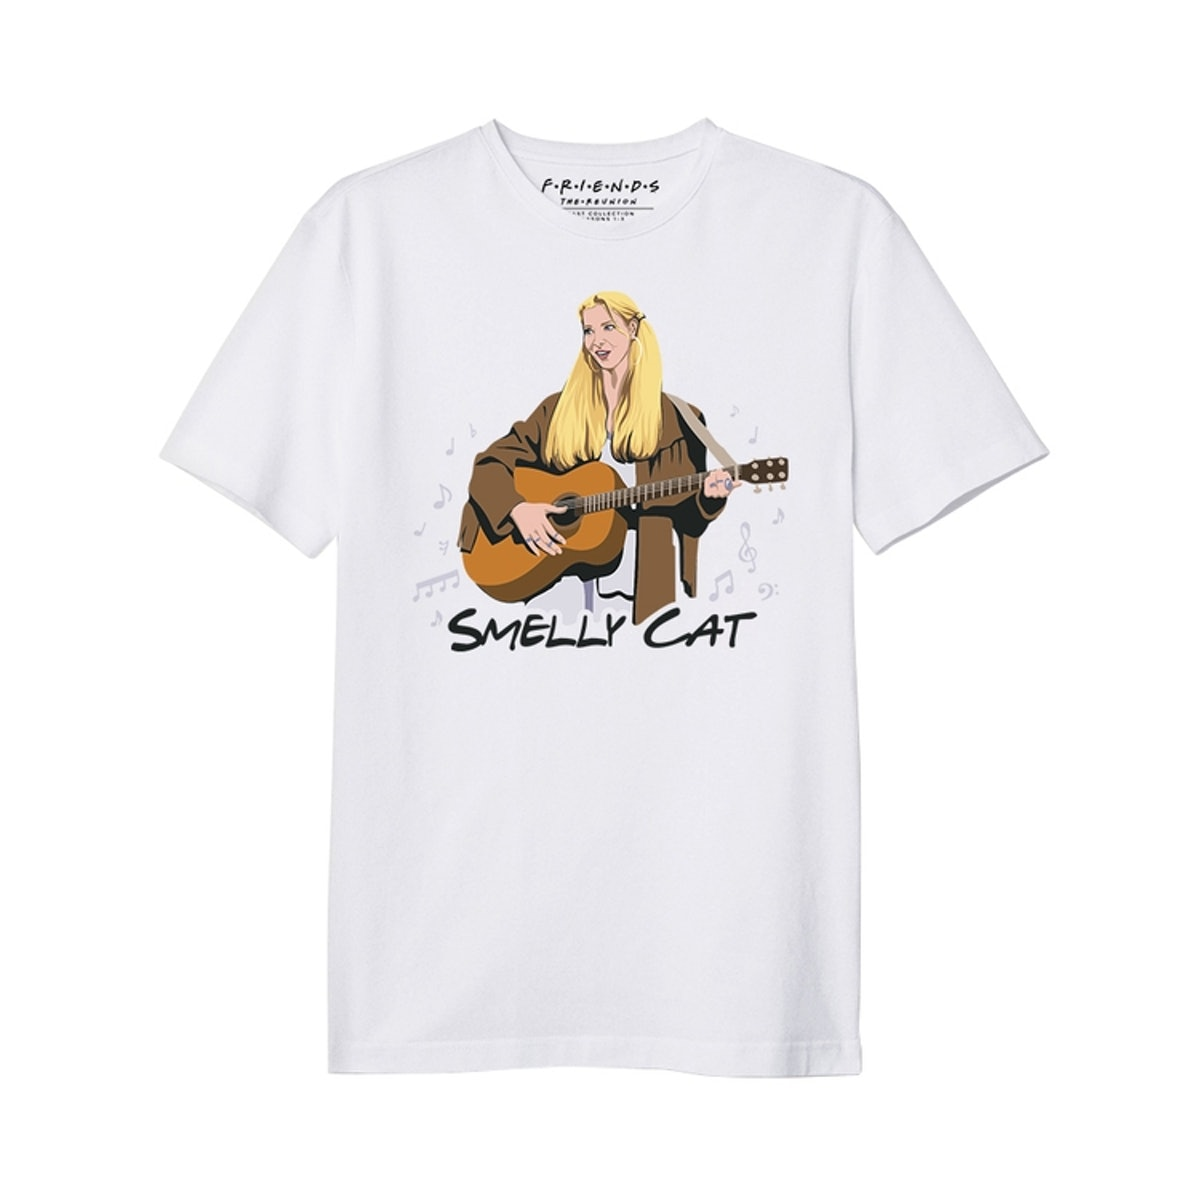 'Friends' Reunion Limited Edition Cast Collection smelly cat tee